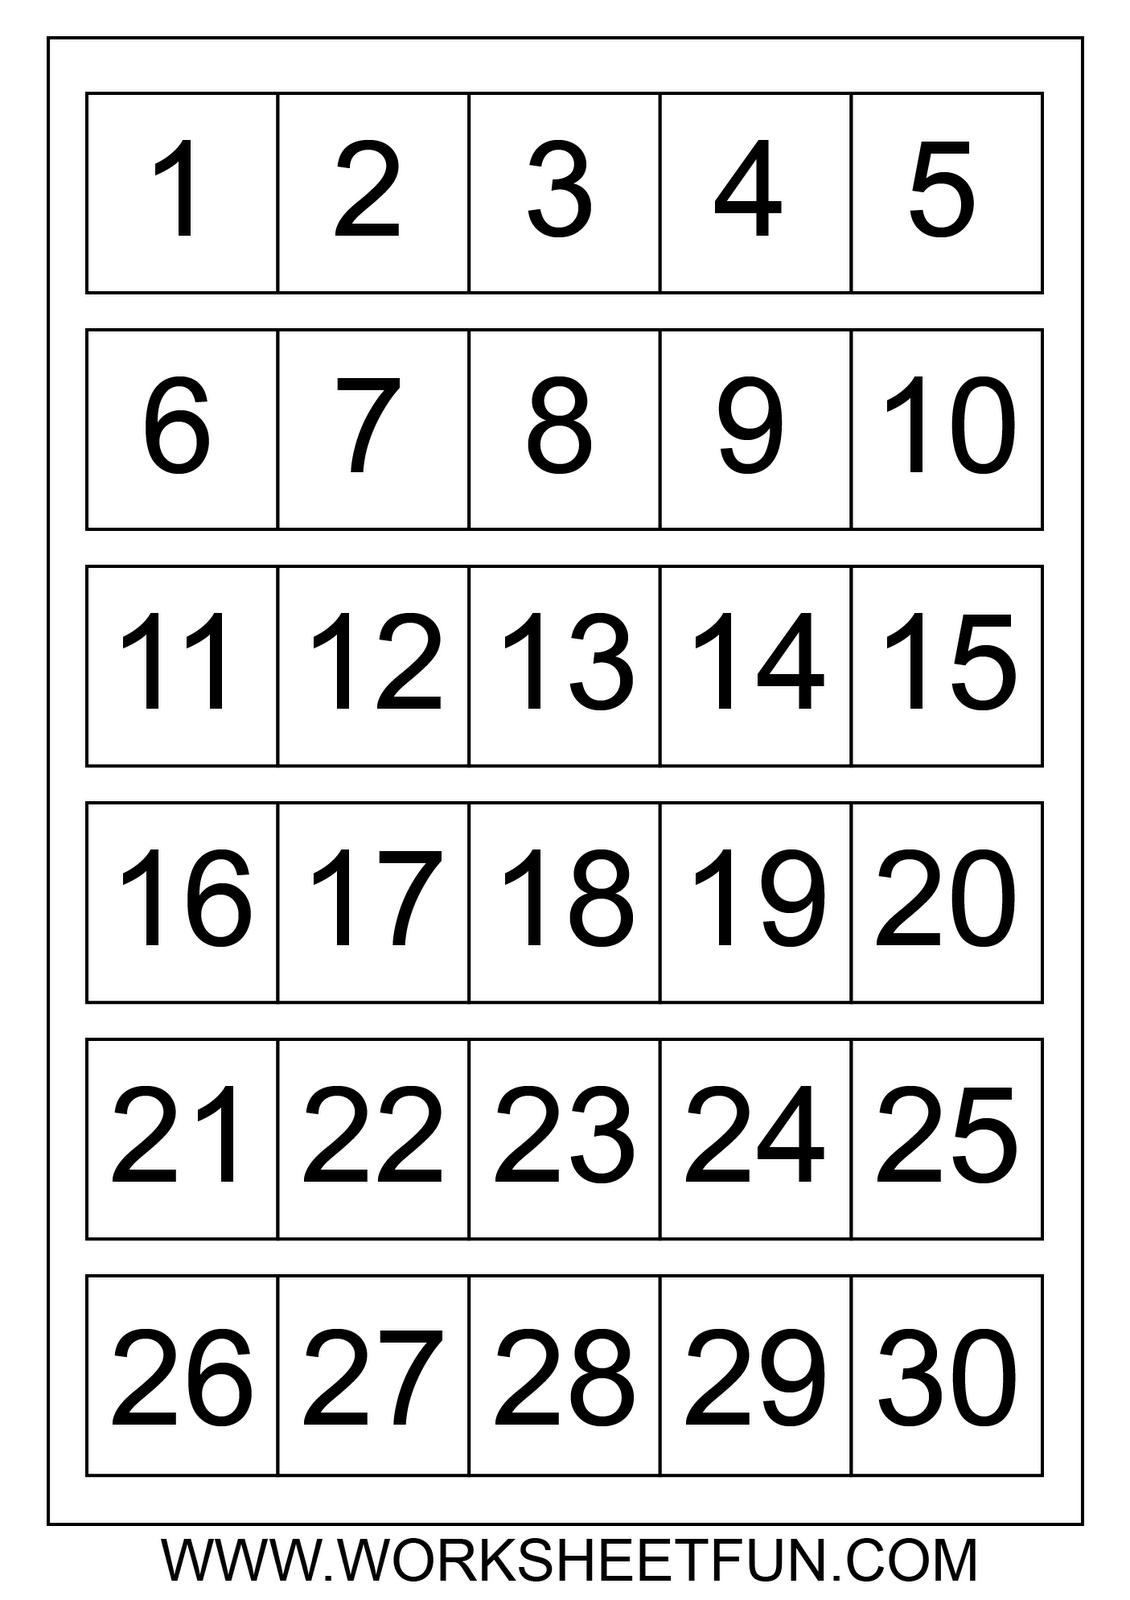 Numbers 1 31 To Print | Template Calendar Printable throughout Calendar Numbers 1-31 To Print